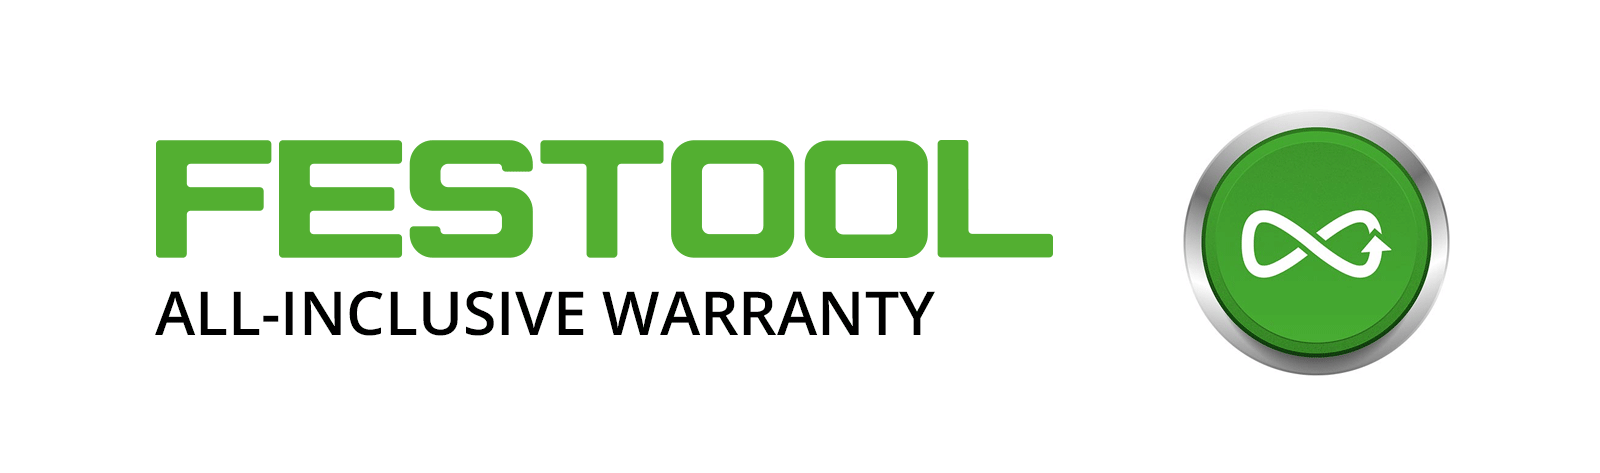 festool-warranty.png